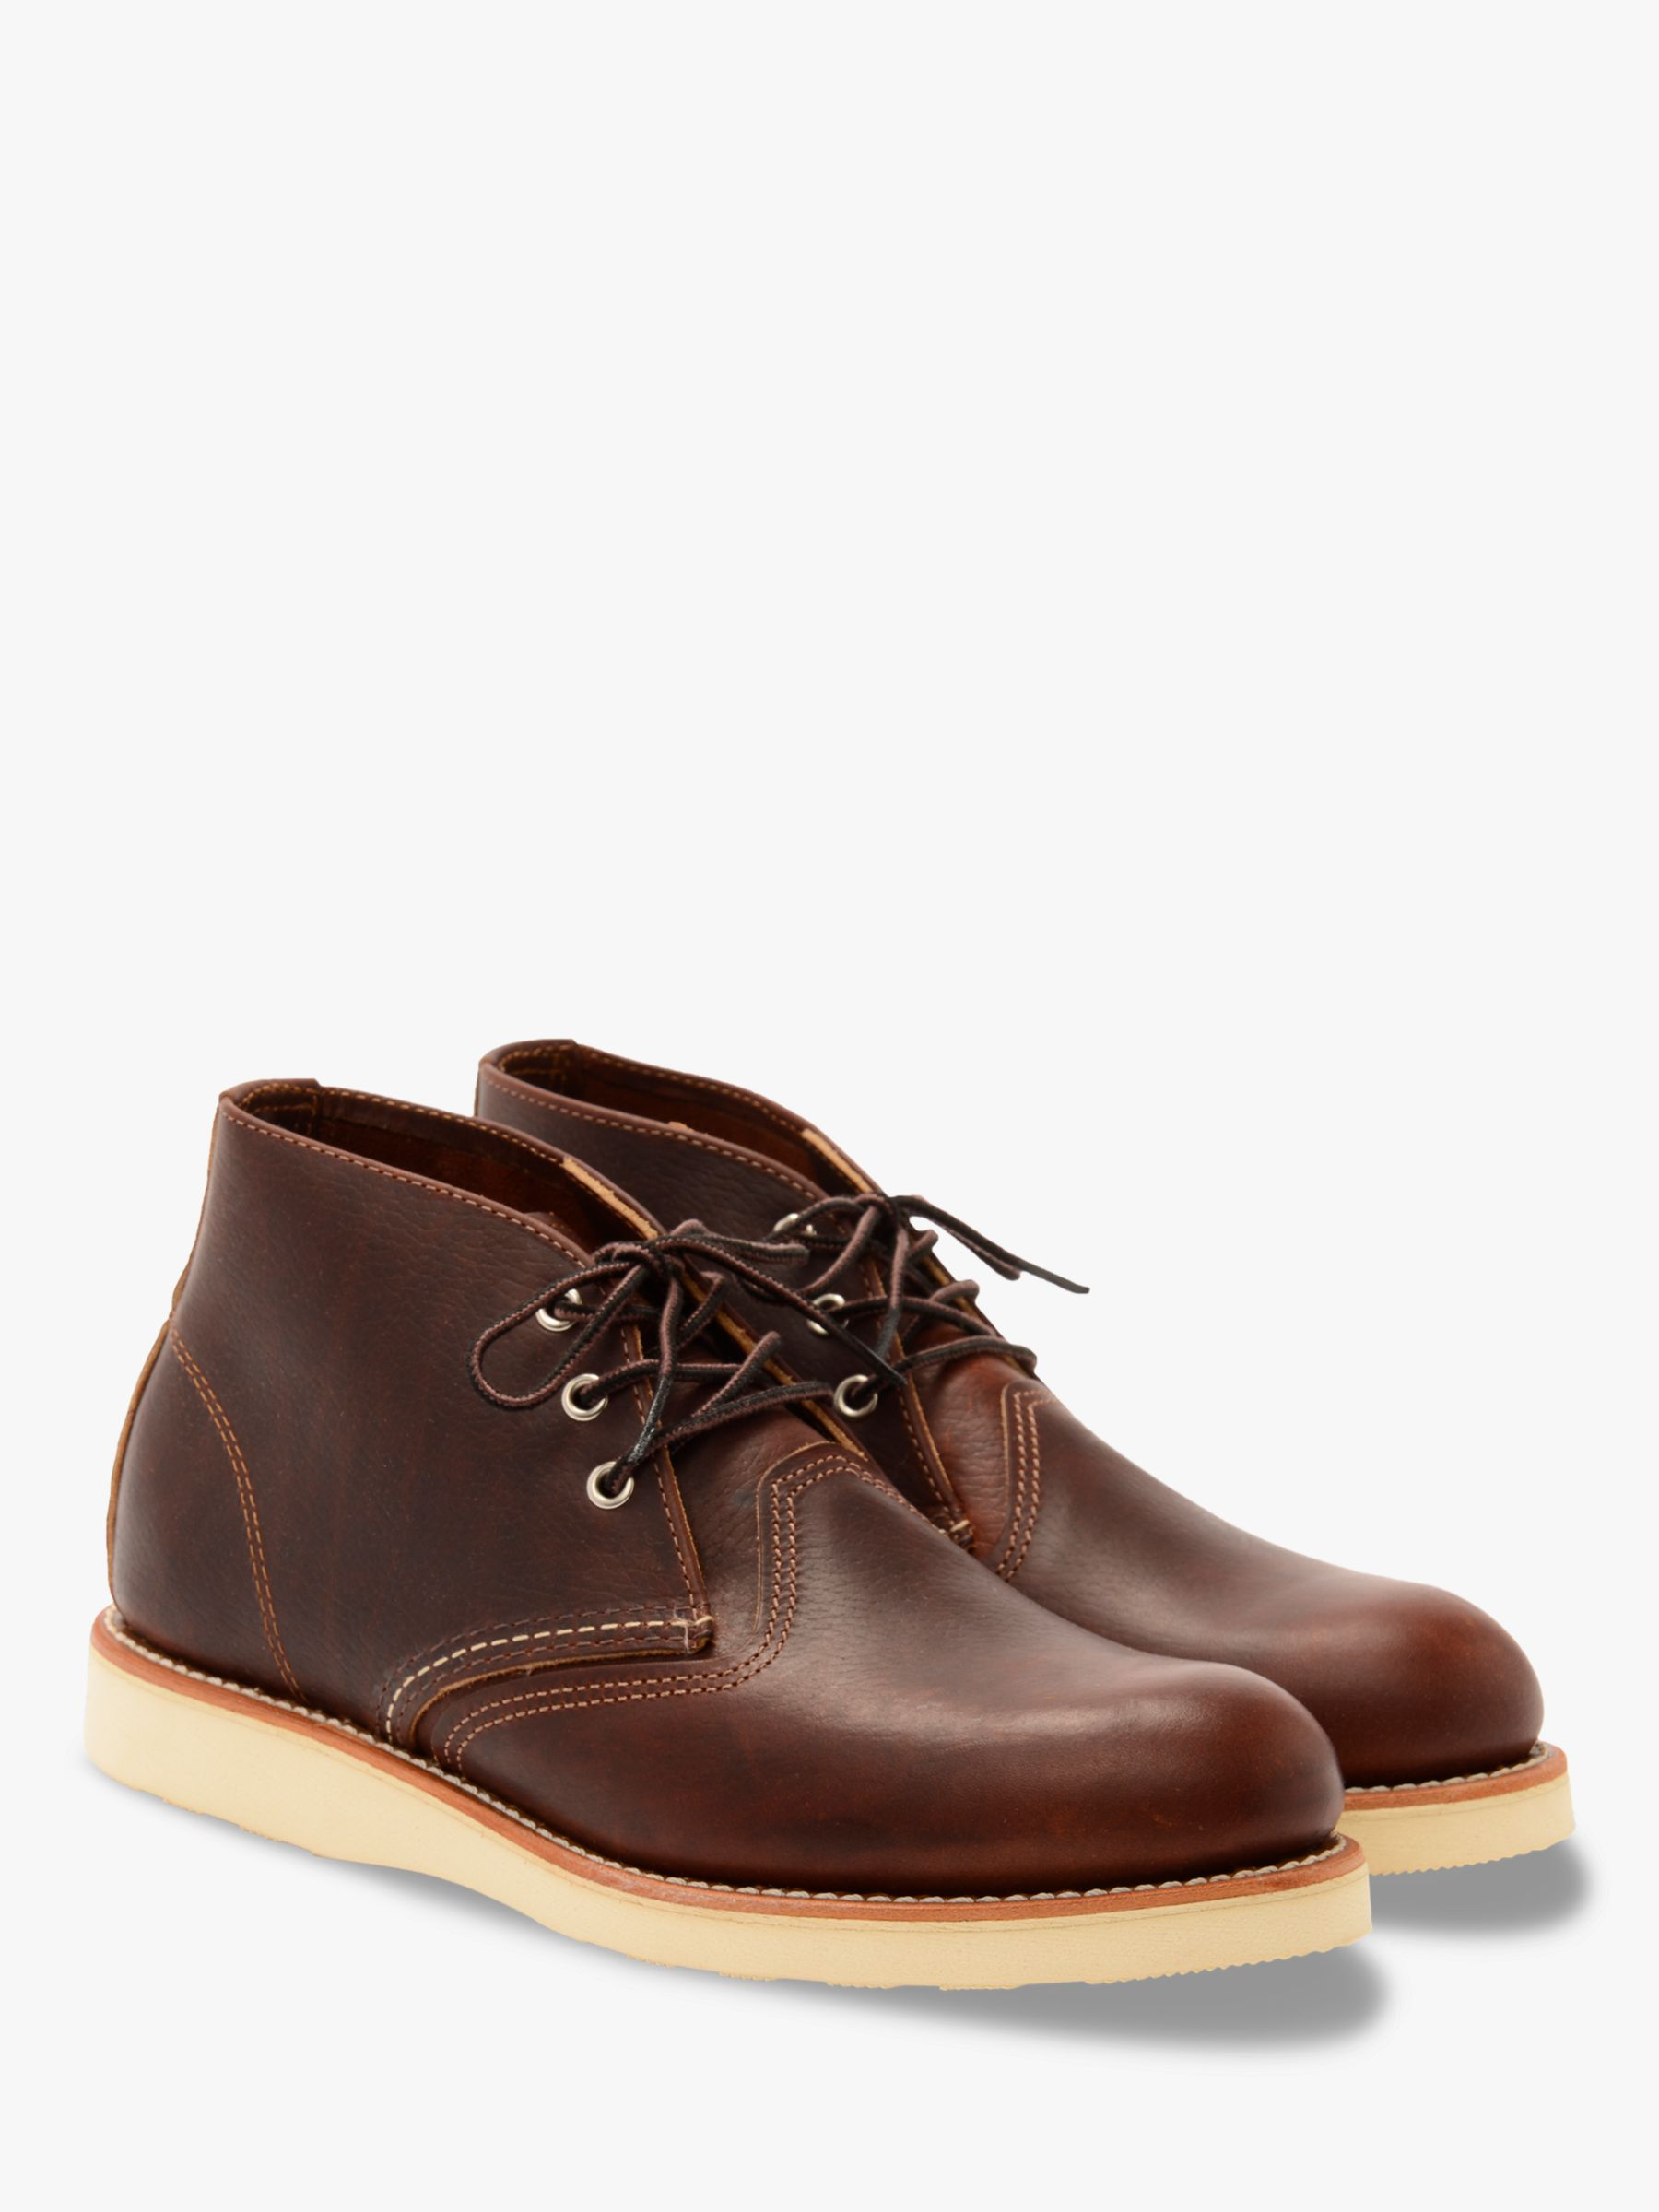 Red Wing Red Wing 3141 Work Chukka Boot, Briar Oil Slick